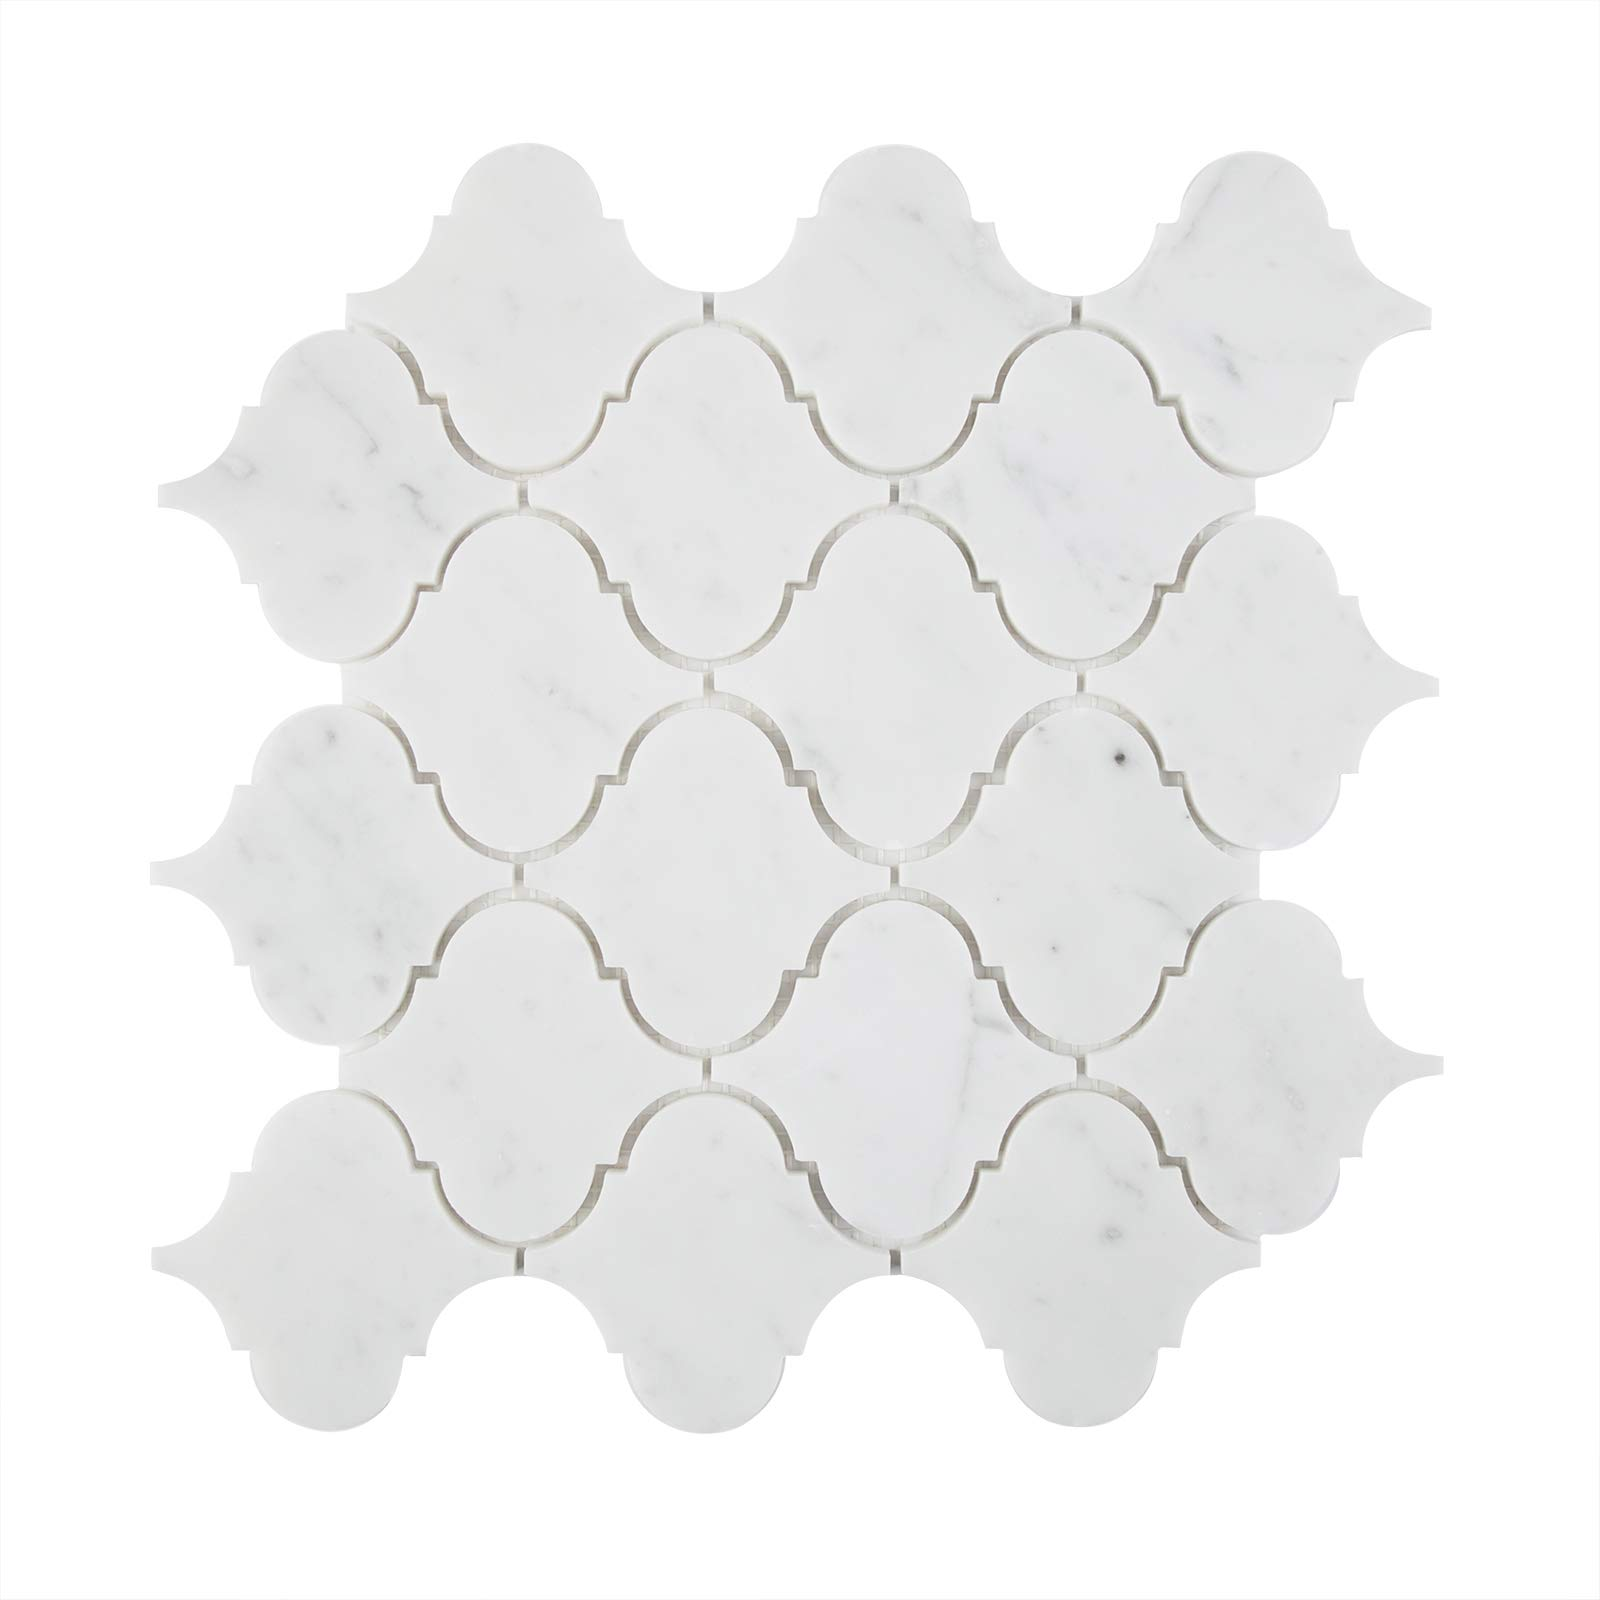 5 Pieces Marble Mosaic Tile,''Lantern Collection'', MM 9201A - Carrara White, 2-1/2''X2-1/2'' Big Arabesque, 11-1/2''X11-1/4''X5/16'', Polished (Box of 5 Sheets)